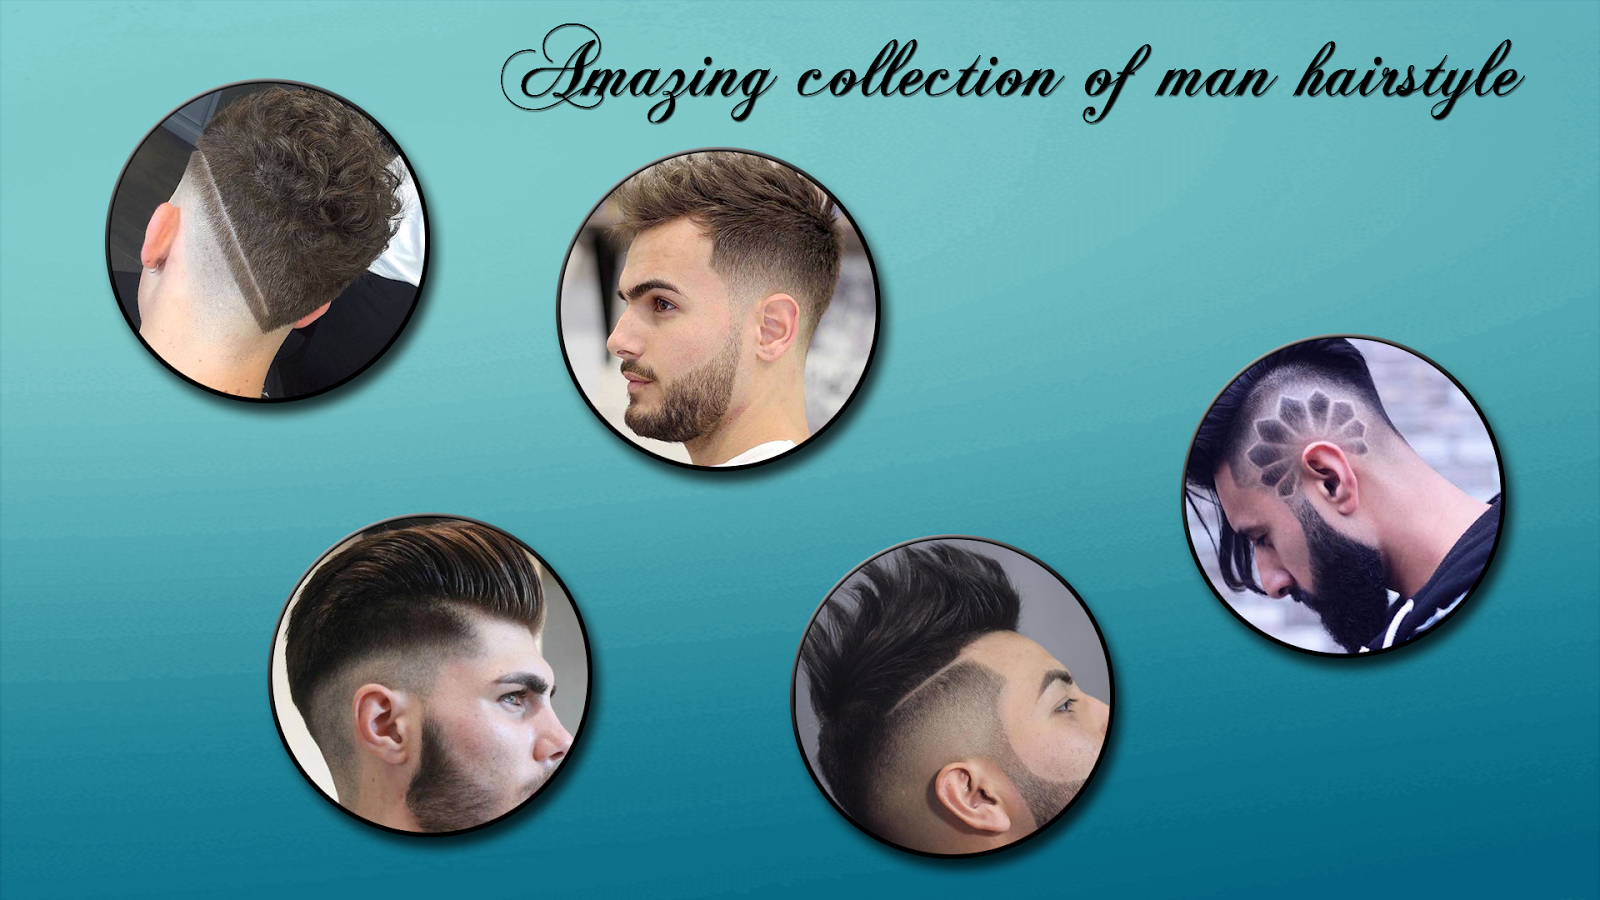 Hairstyle According To My Face Men Hairstyle Set My Face 2017 Android Apps On Google Play